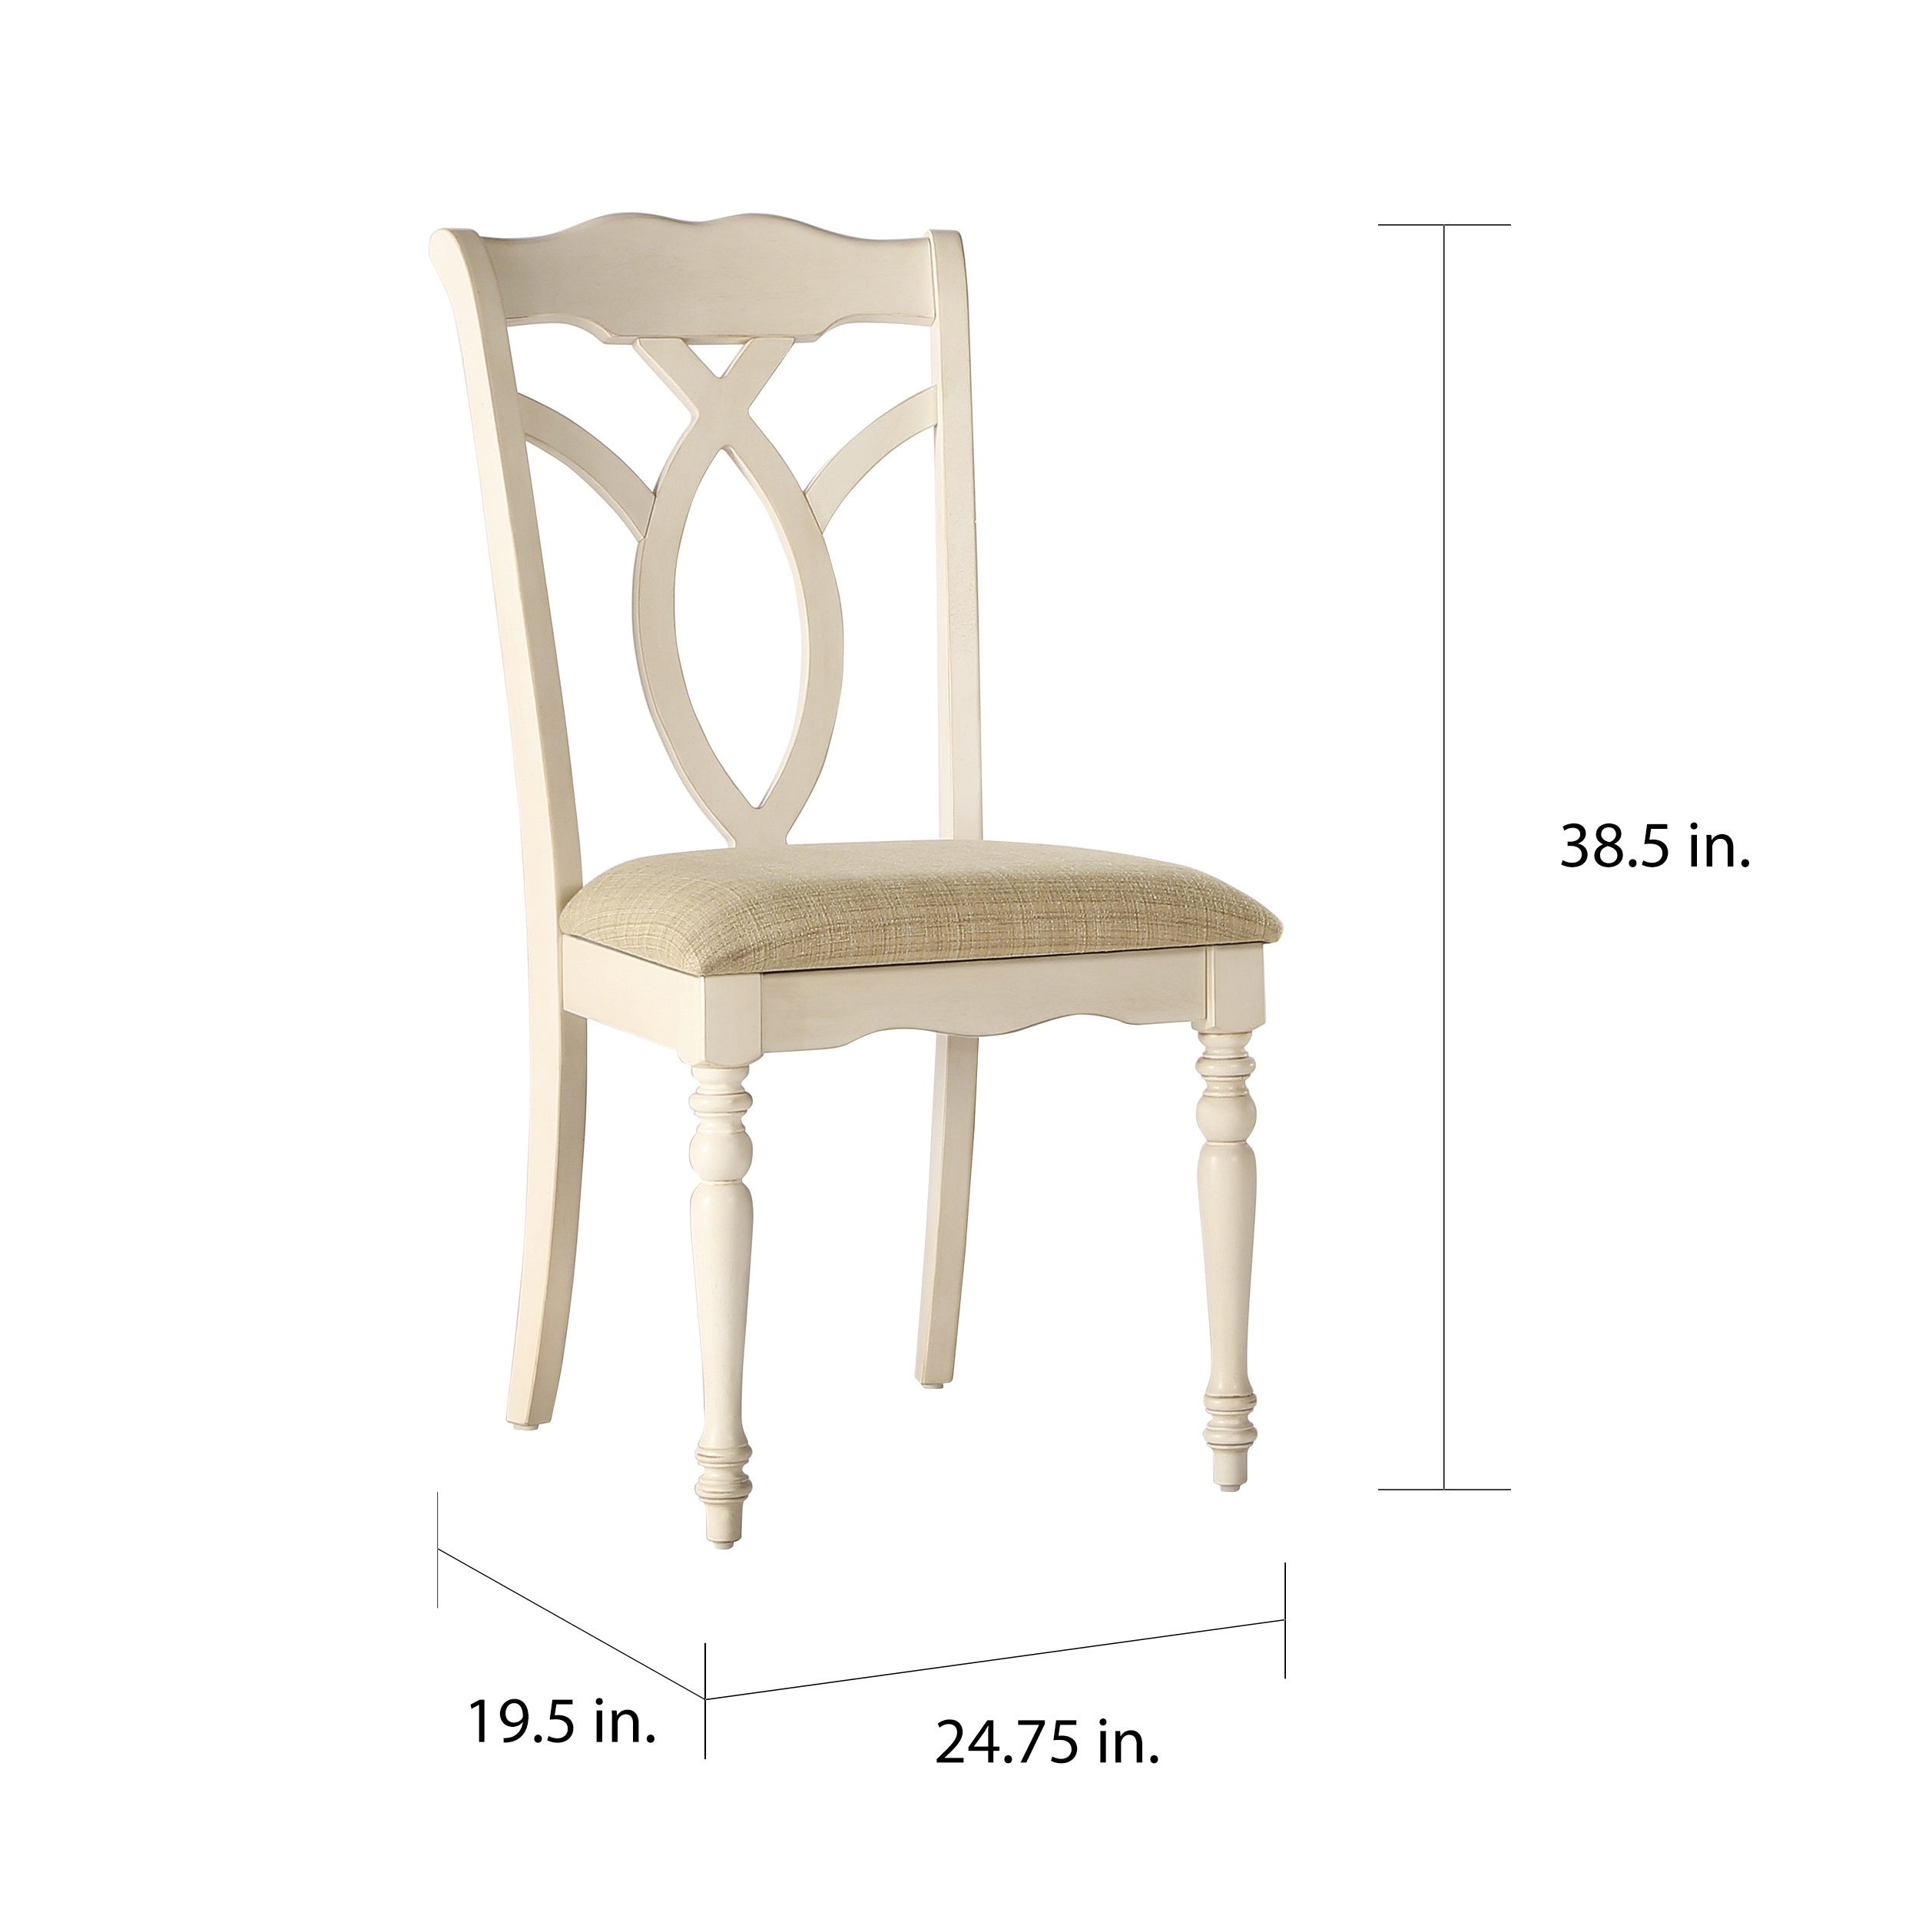 Shayne Country Antique White Beige Dining Chairs by iNSPIRE Q Classic (Set  of 2) - Free Shipping Today - Overstock.com - 17136472